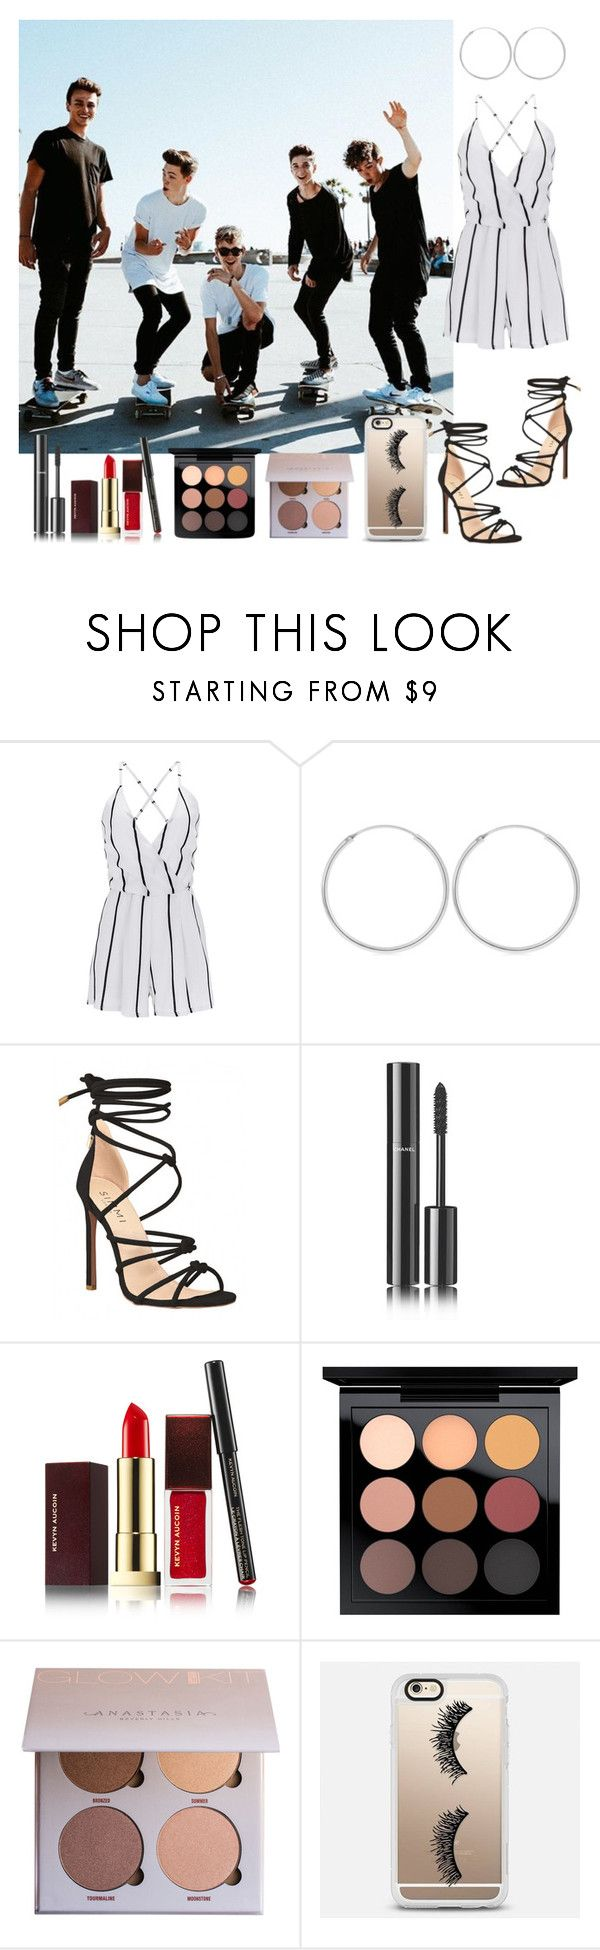 """""""Why Don't We"""" by anna-lamanilao ❤ liked on Polyvore featuring WithChic, Chanel, Kevyn Aucoin, MAC Cosmetics and Casetify"""